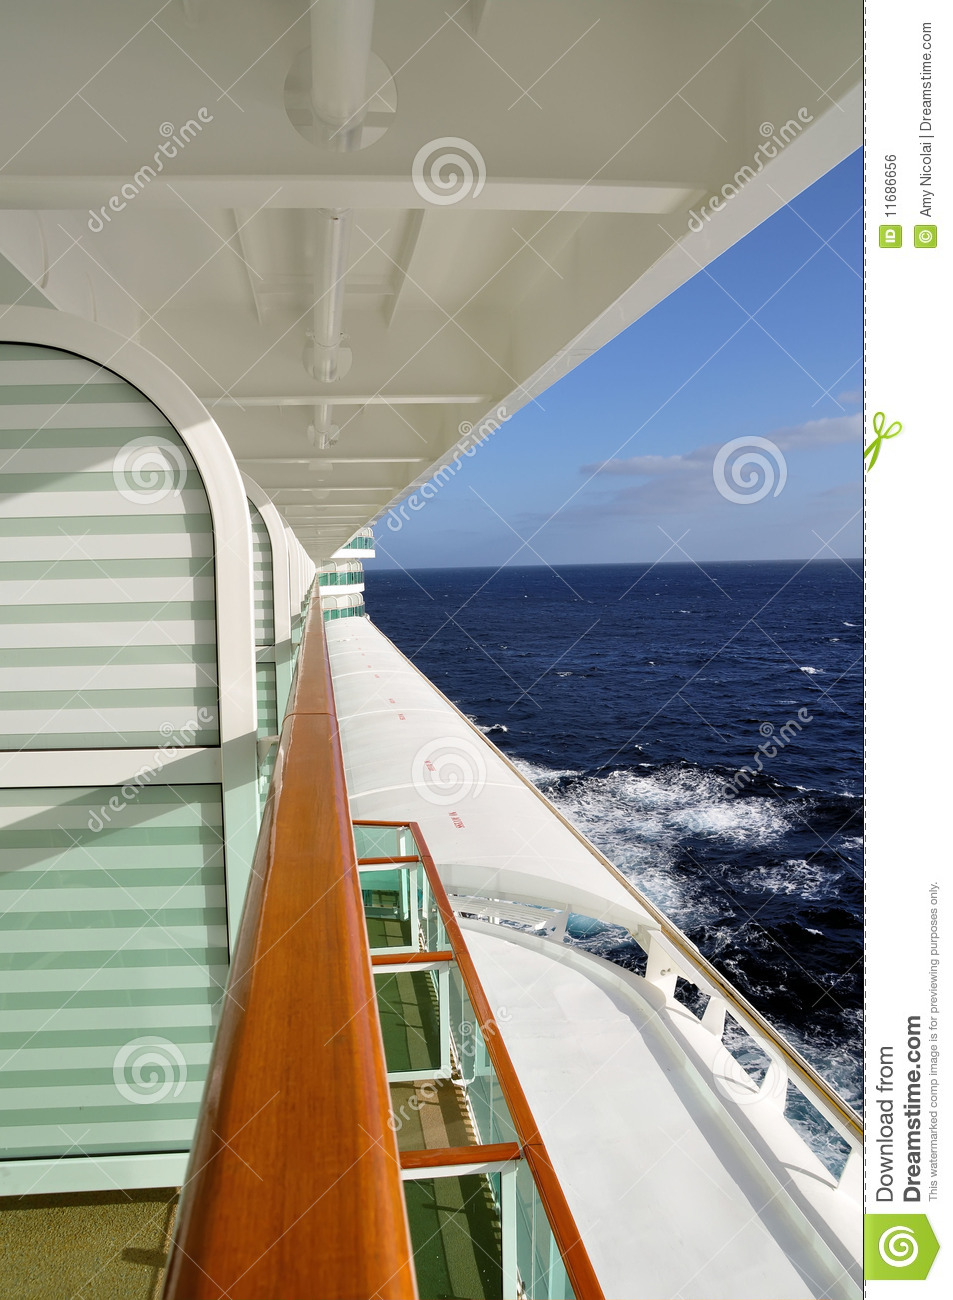 Cruise ship view from the balcony royalty free stock image for Balcony on cruise ship